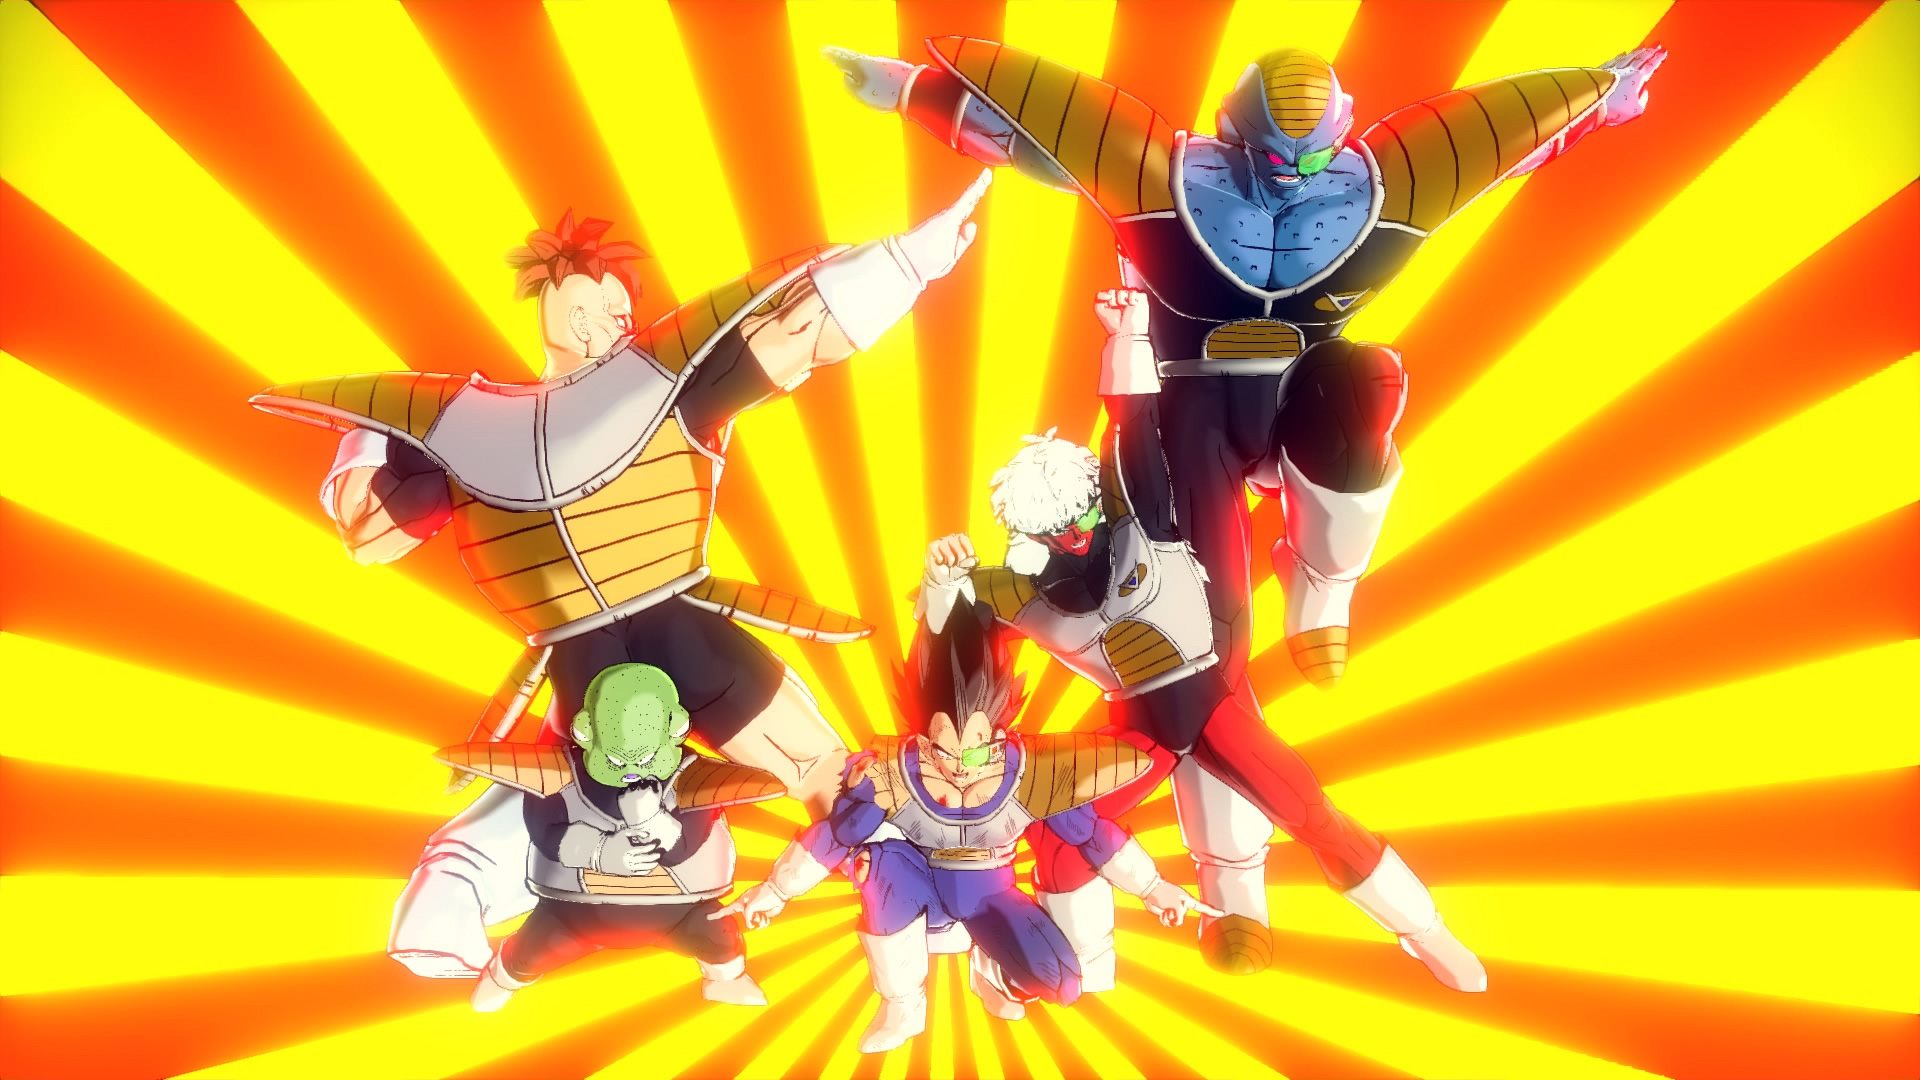 Dragon-Ball-Xenoverse-Screenshot-Vegeta-Ginyu-Force-2